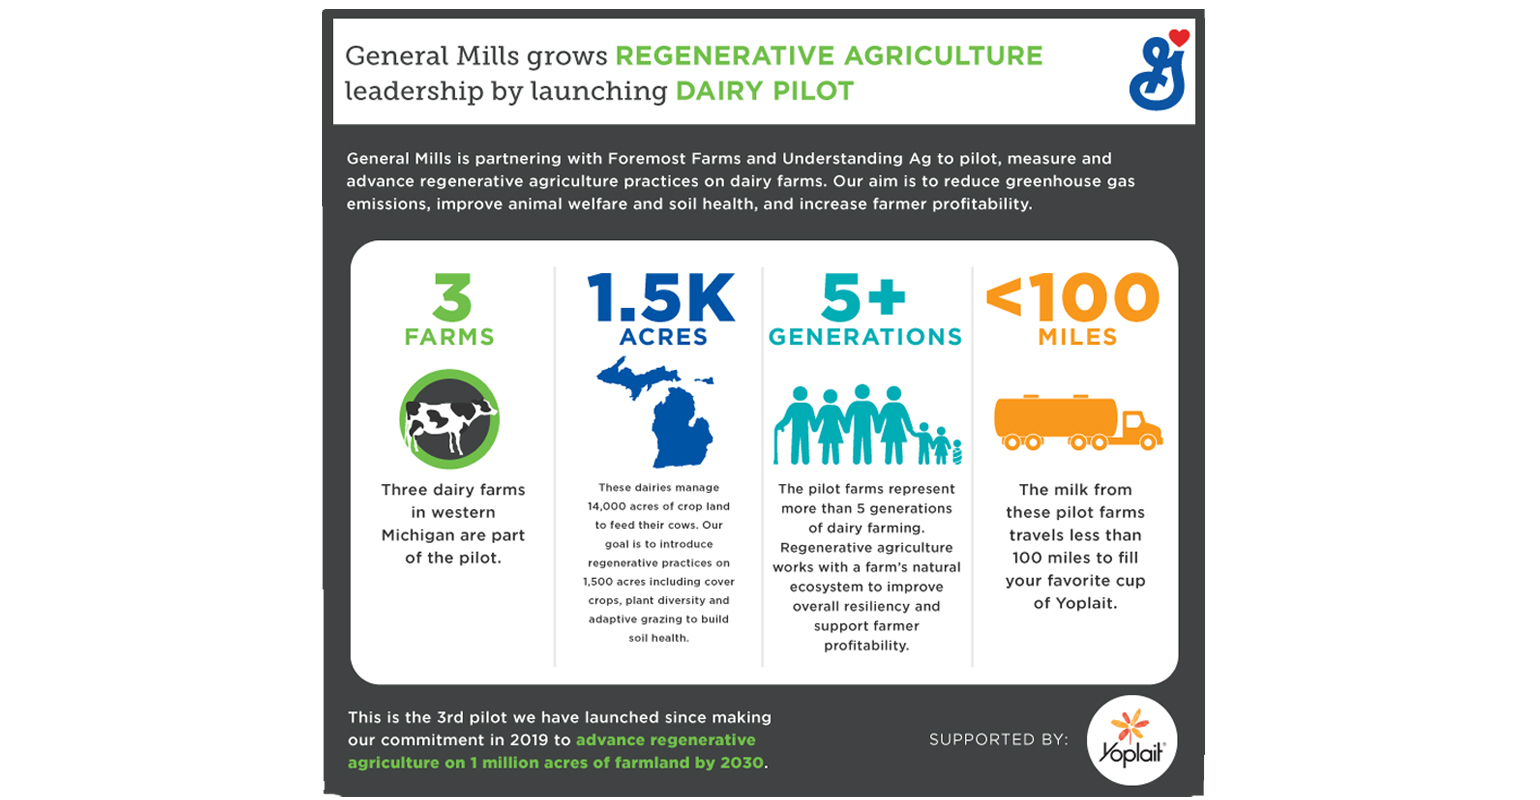 General Mills pilots regenerative agriculture project for dairy farms